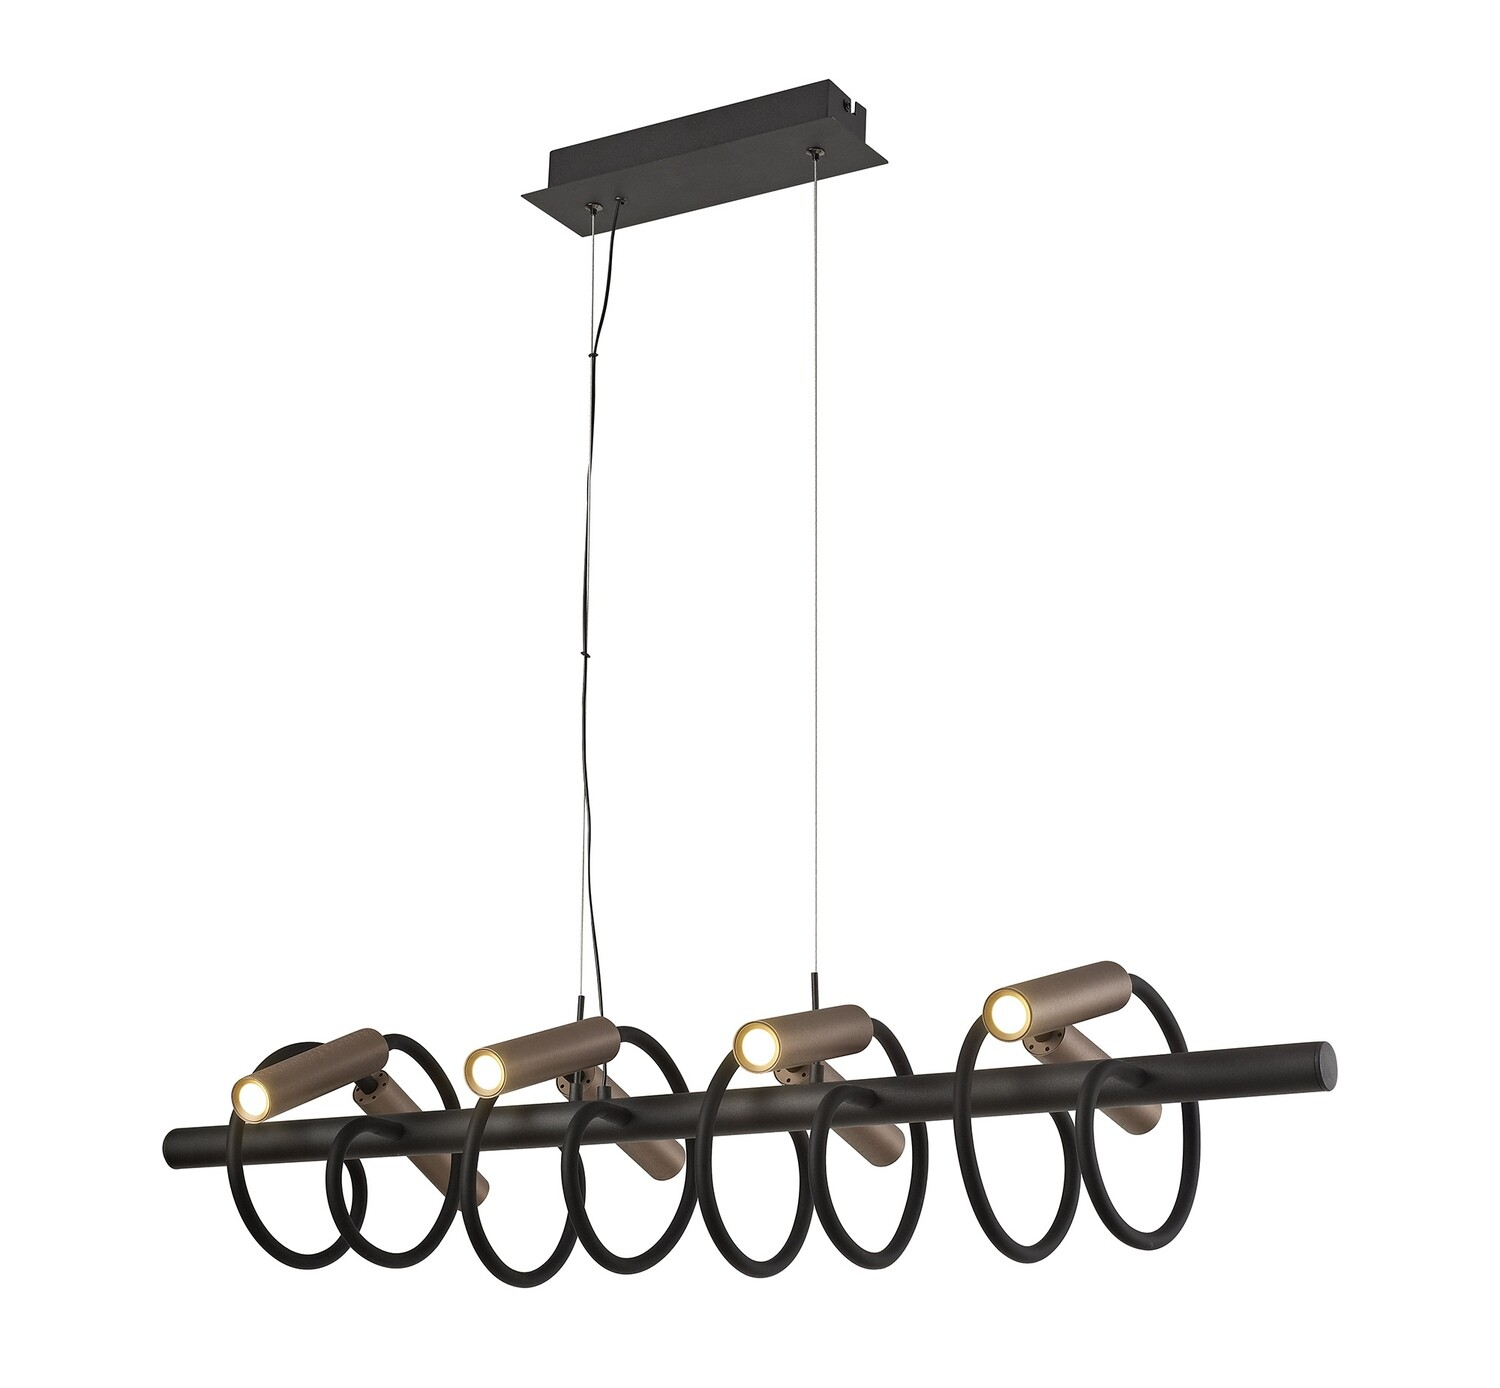 Stanie Linear Pendant, 8 Light Adjustable Arms, 8 x 4W LED Dimmable, 3000K, 2000lm, Black/Satin Copper